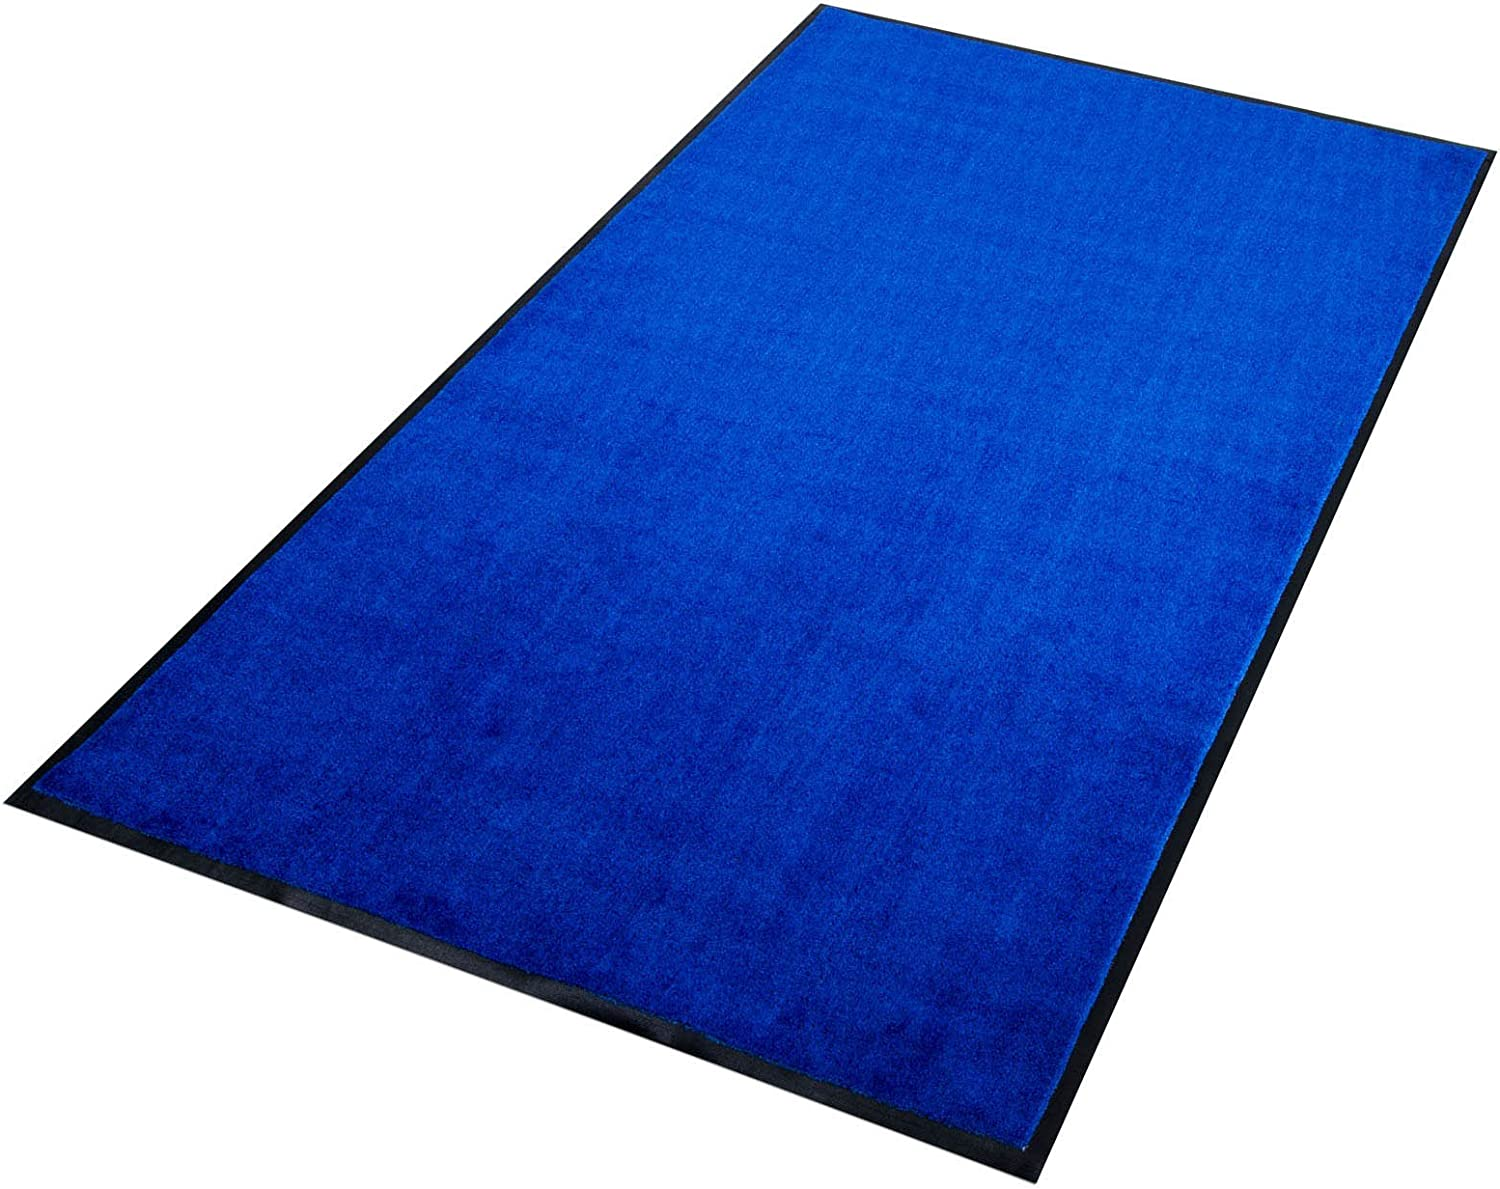 Joy Series Use & Wash Floor Mat - bluee - 60x90cm - 5 sizes available by Use & Wash